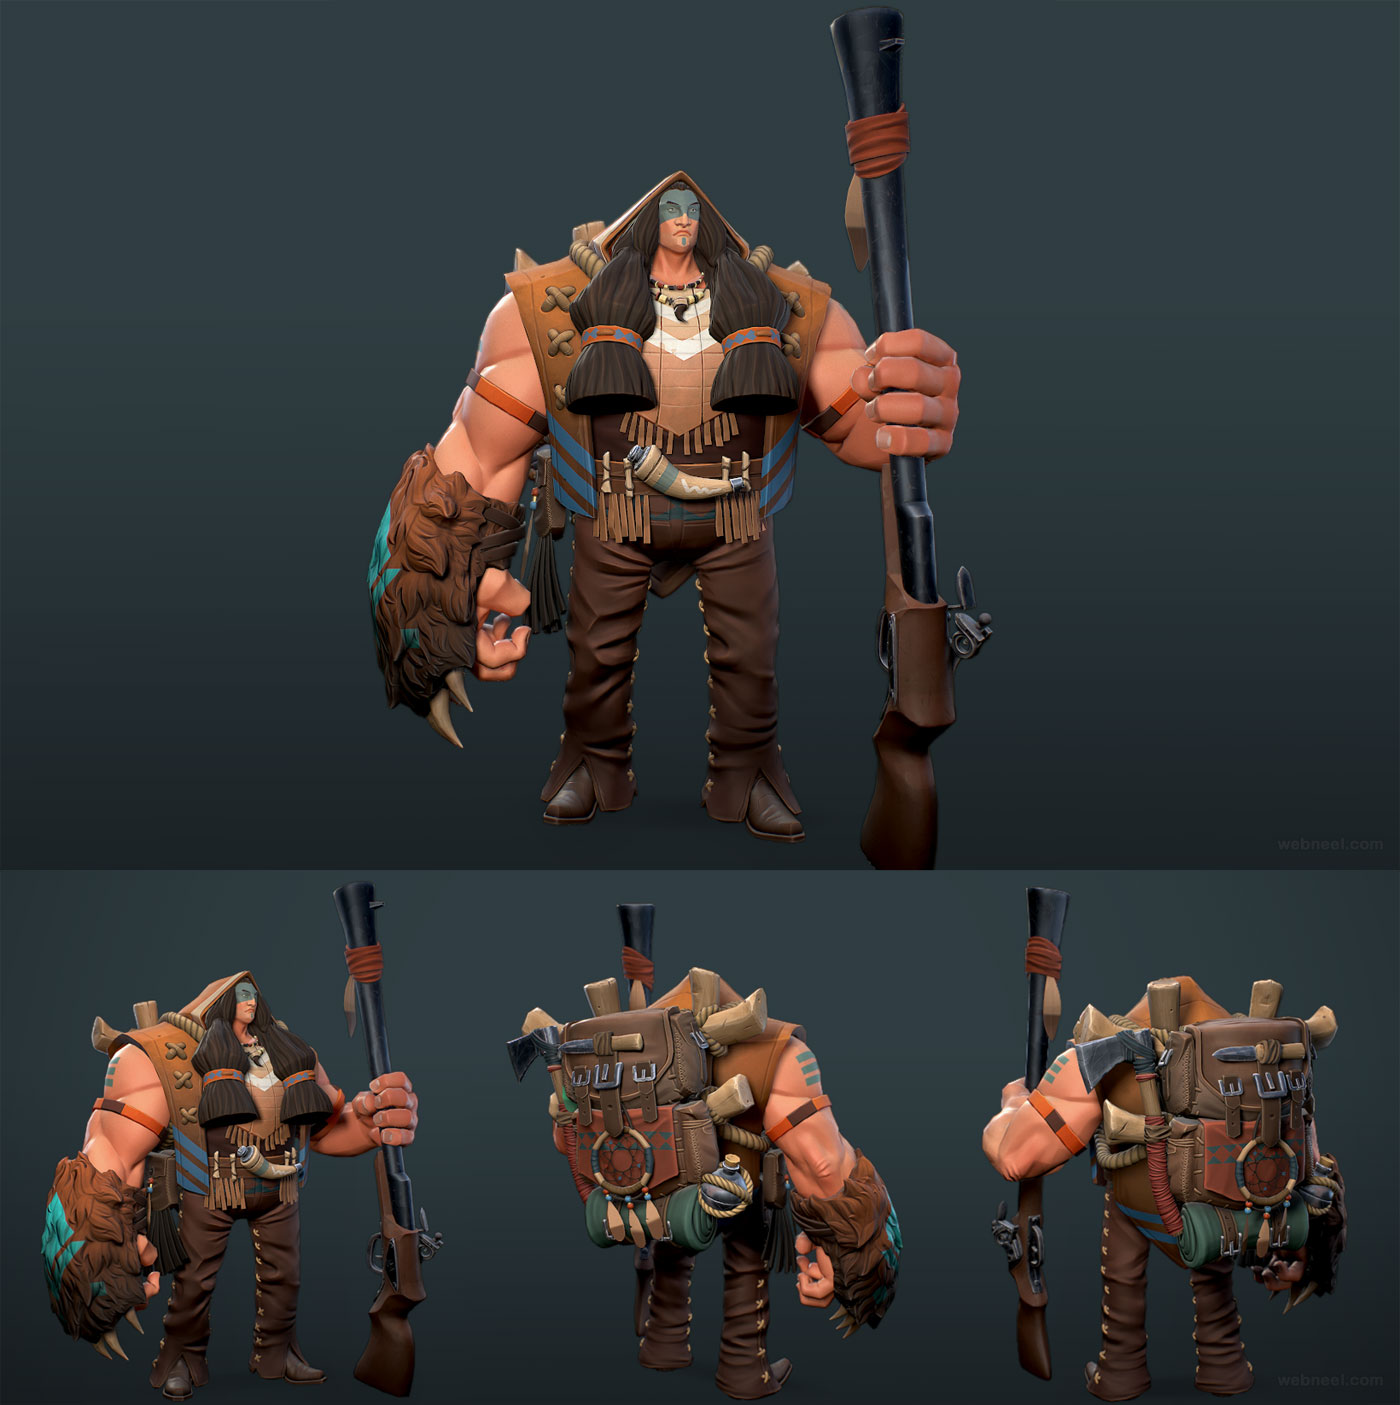 3d model game character by guillaume mahieu